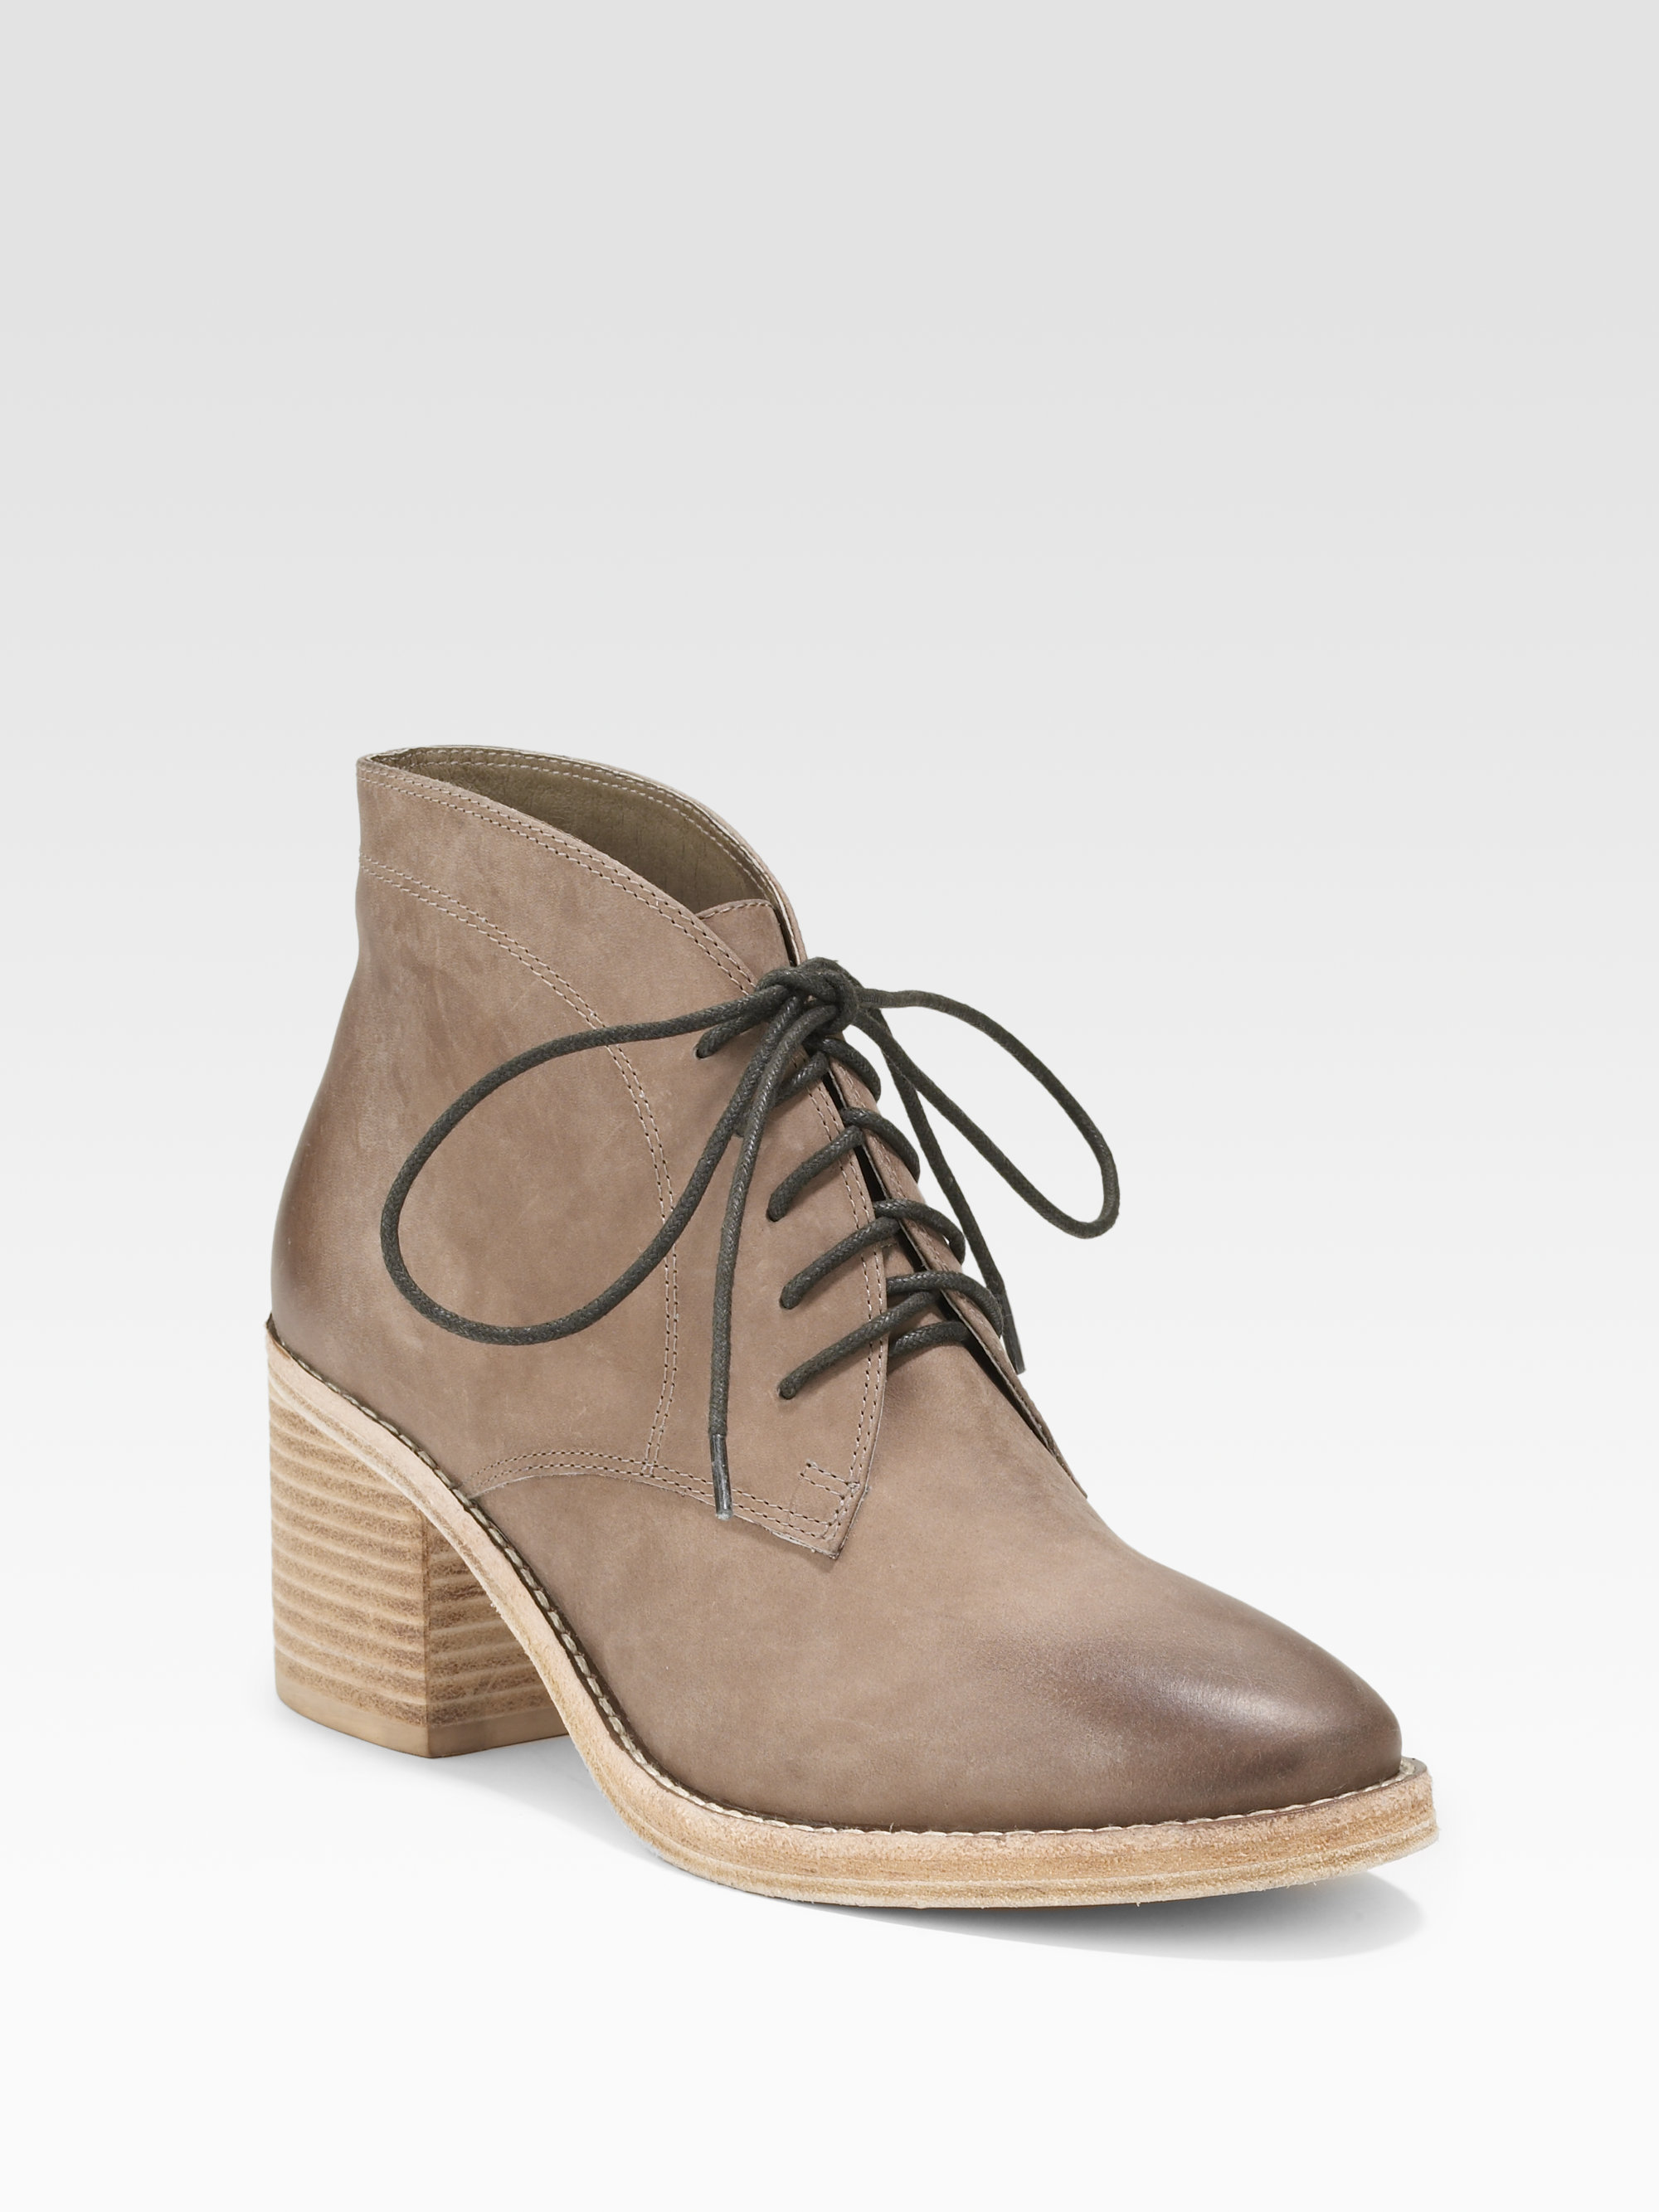 Dolce Vita Asher Laceup Ankle Boots In Gray Taupe Lyst